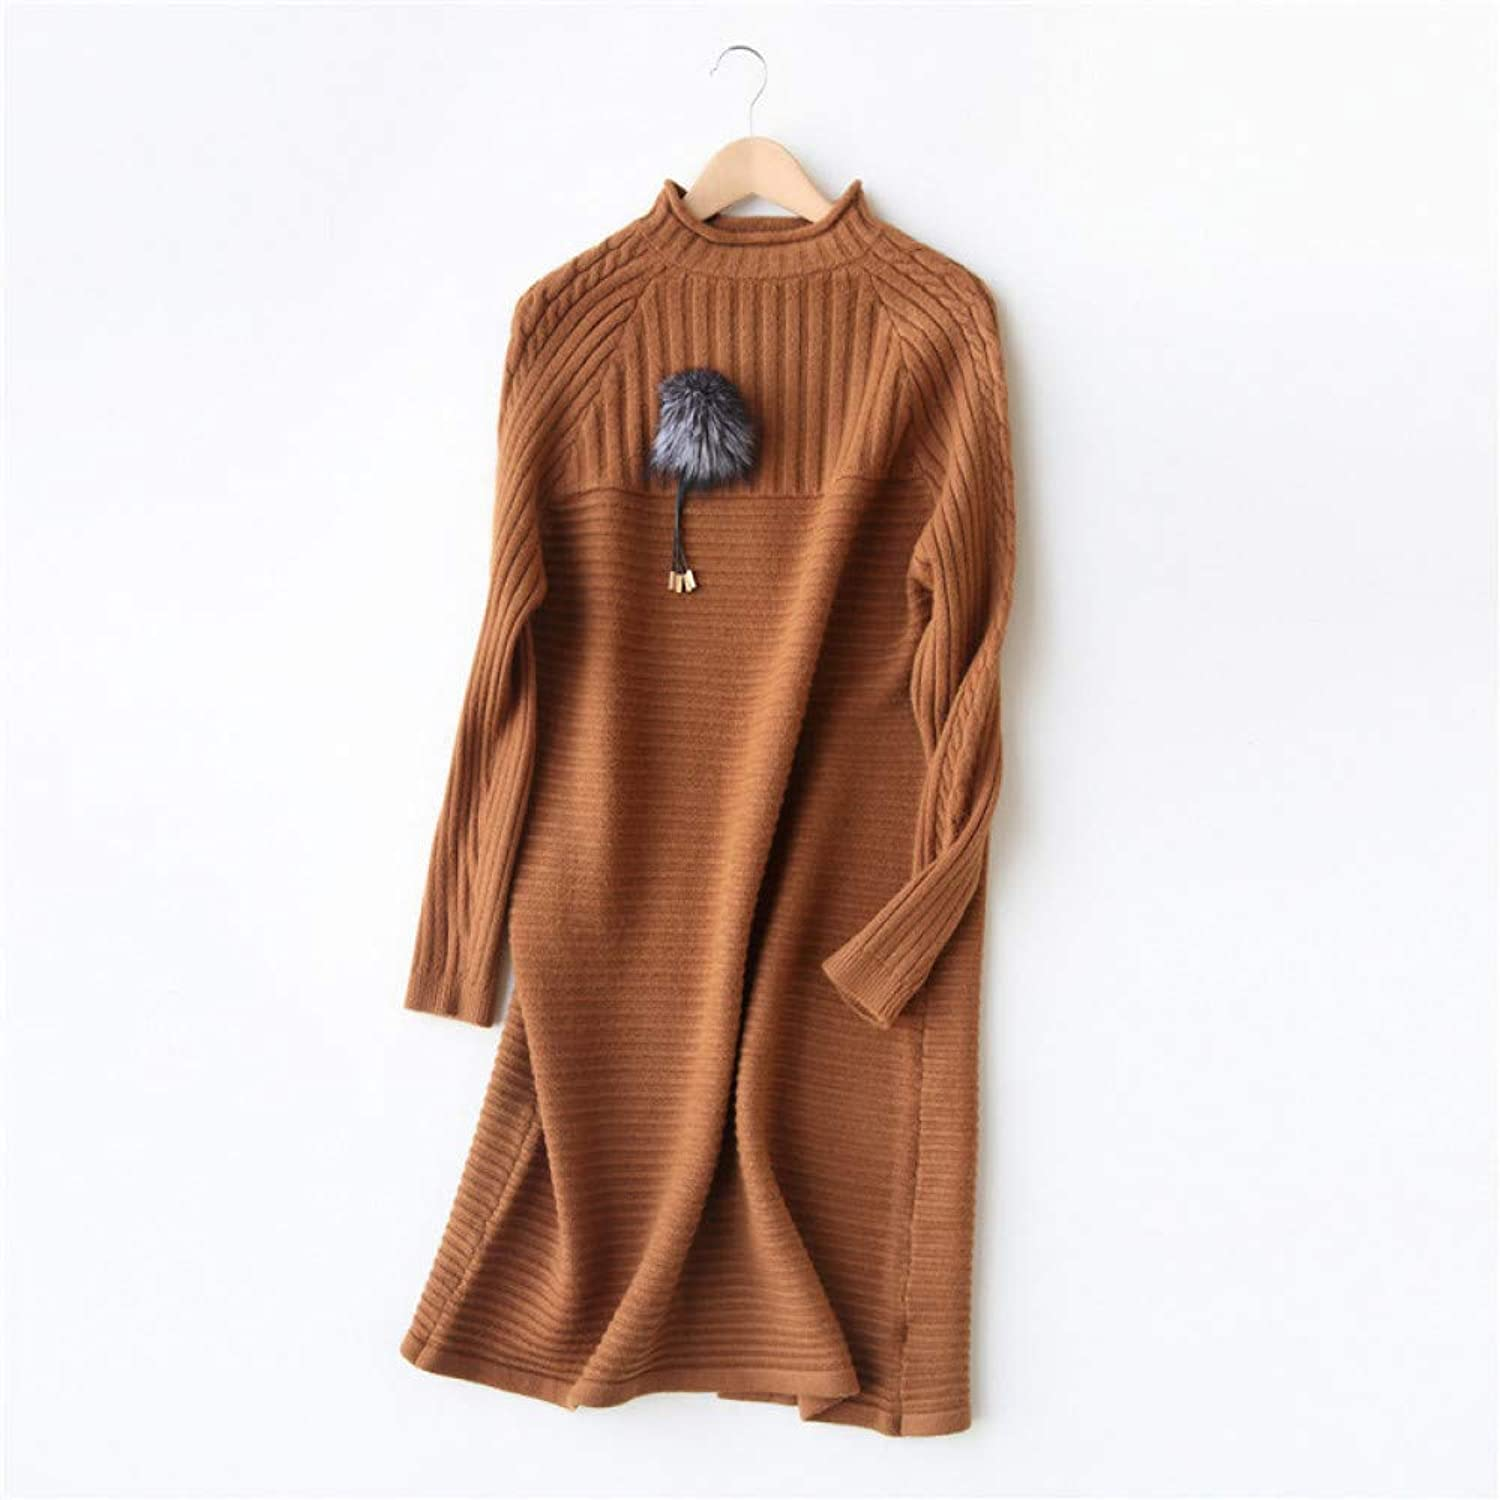 Cxlyq Dresses Winter Dress Sweater Women Turtleneck Collar Knit ALine Long Dresses Long Sleeves Dresses